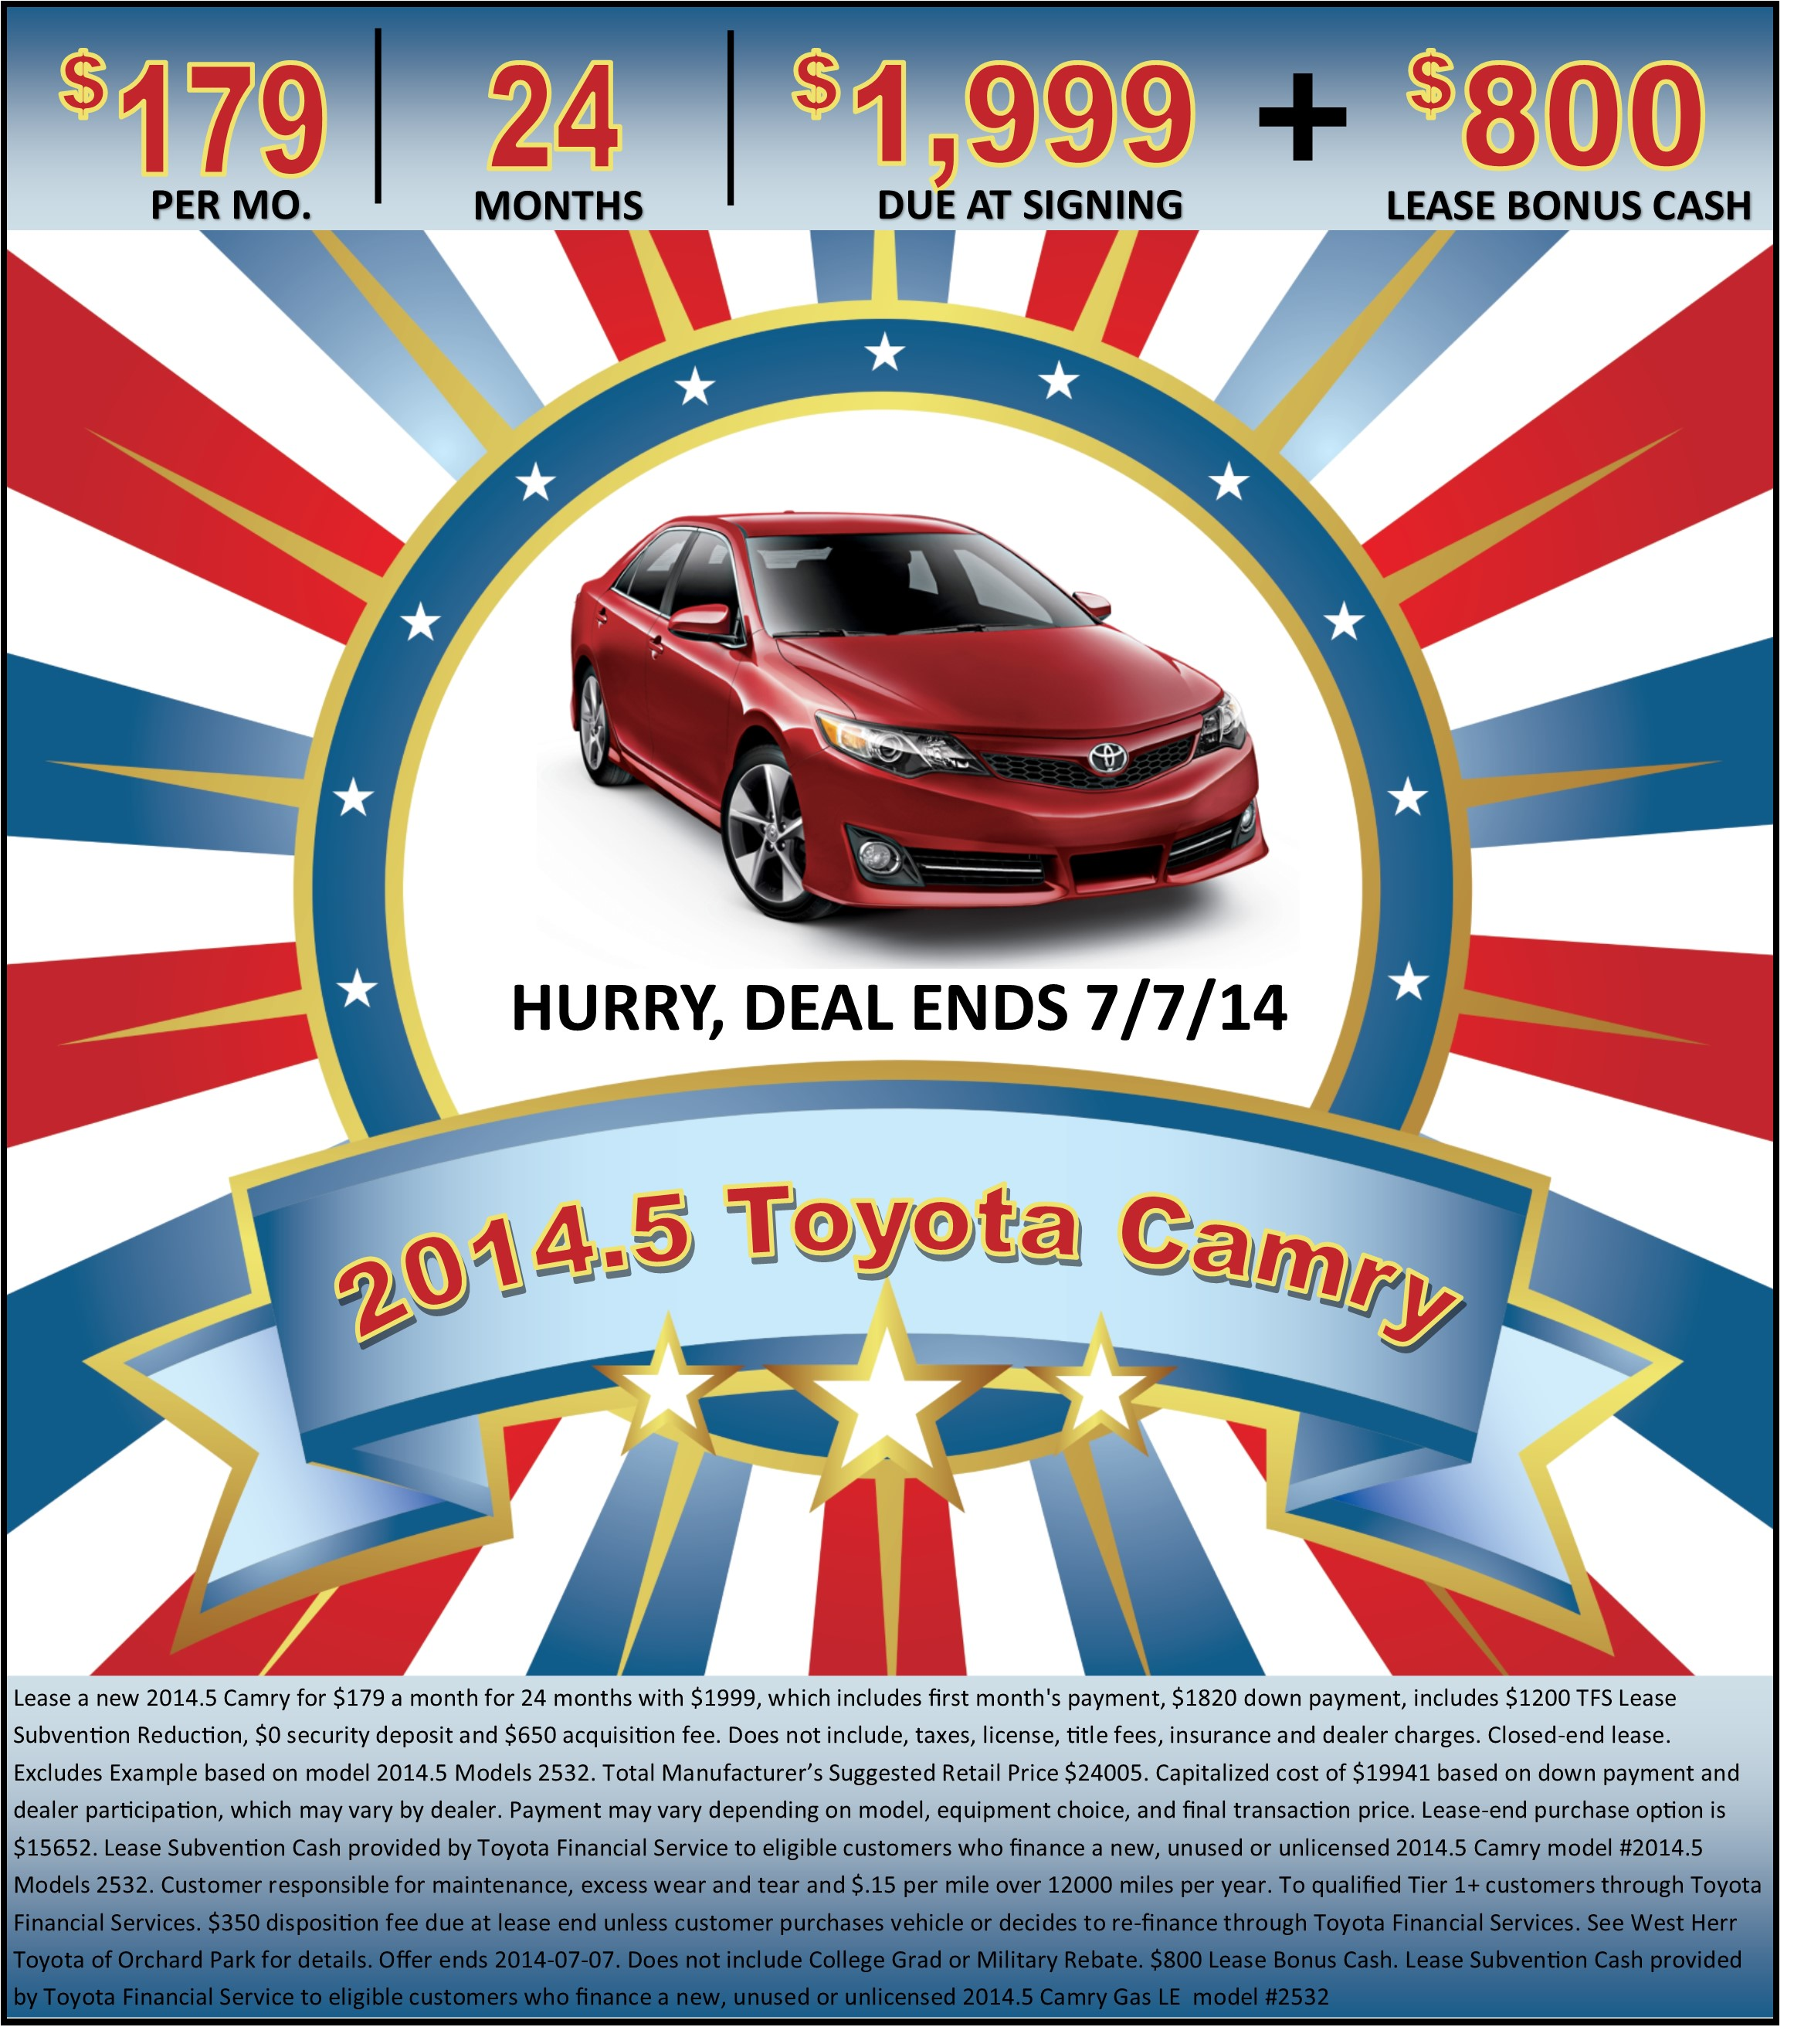 West Herr Toyota >> West Herr Toyota Of Orchard Park New Toyota Dealership In Orchard